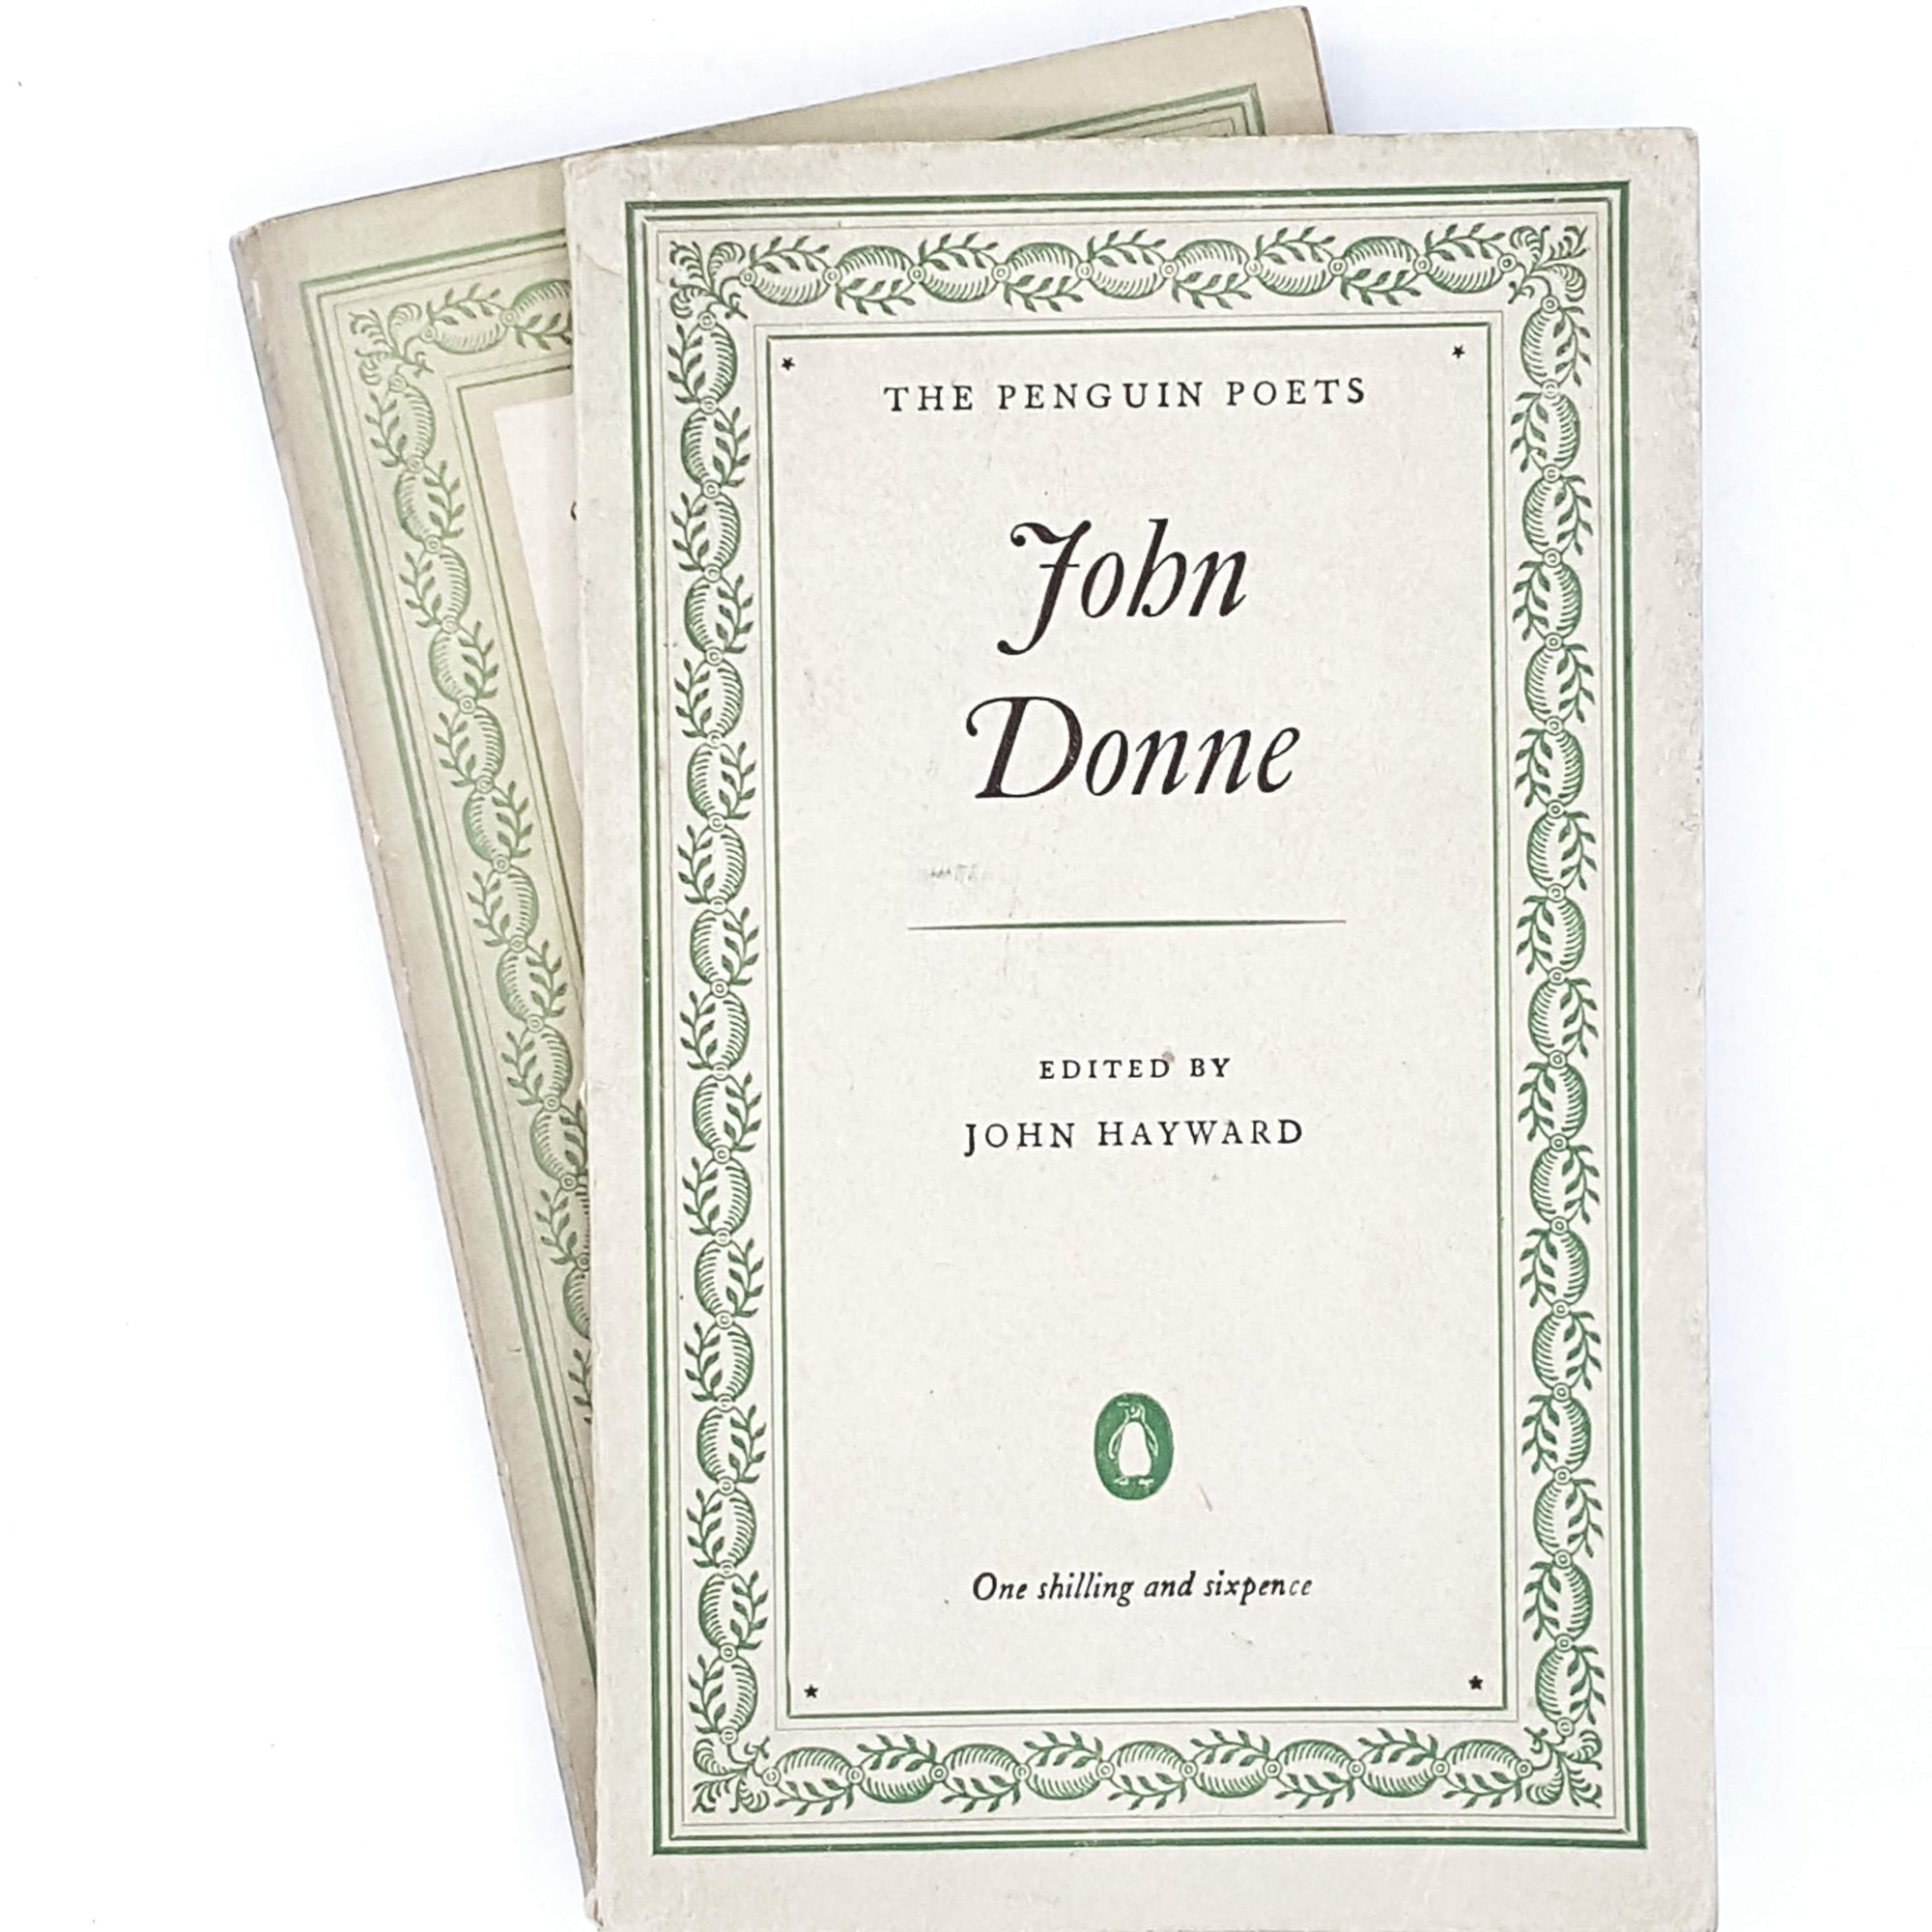 First Edition Collection of Penguin Poetry: Modern American Verse and John Donne 1950 - 1954